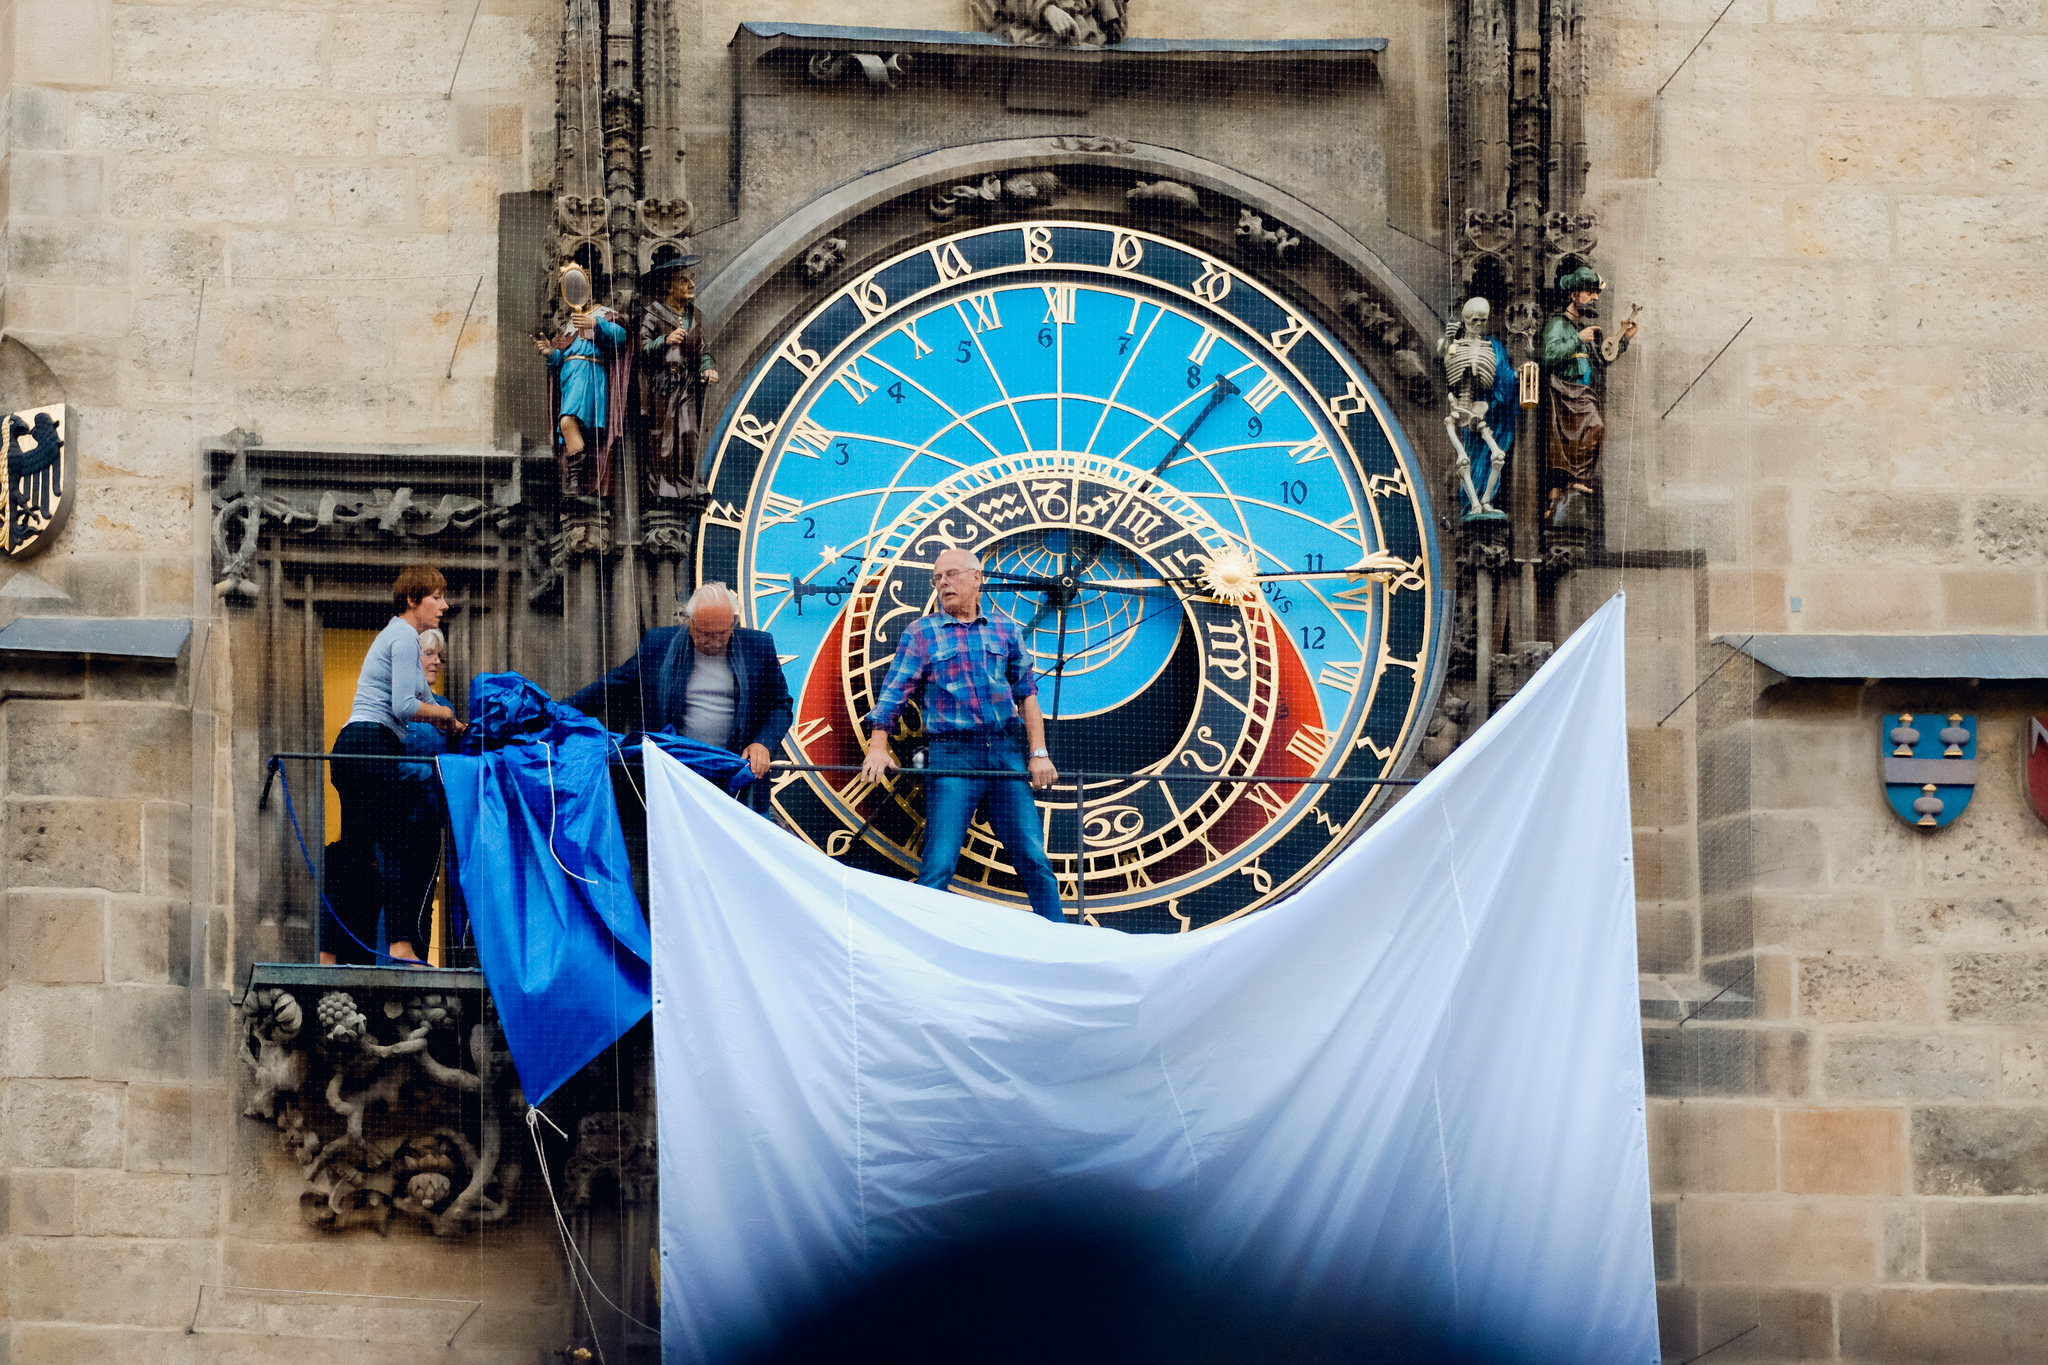 Prague Astronomical clock street photography